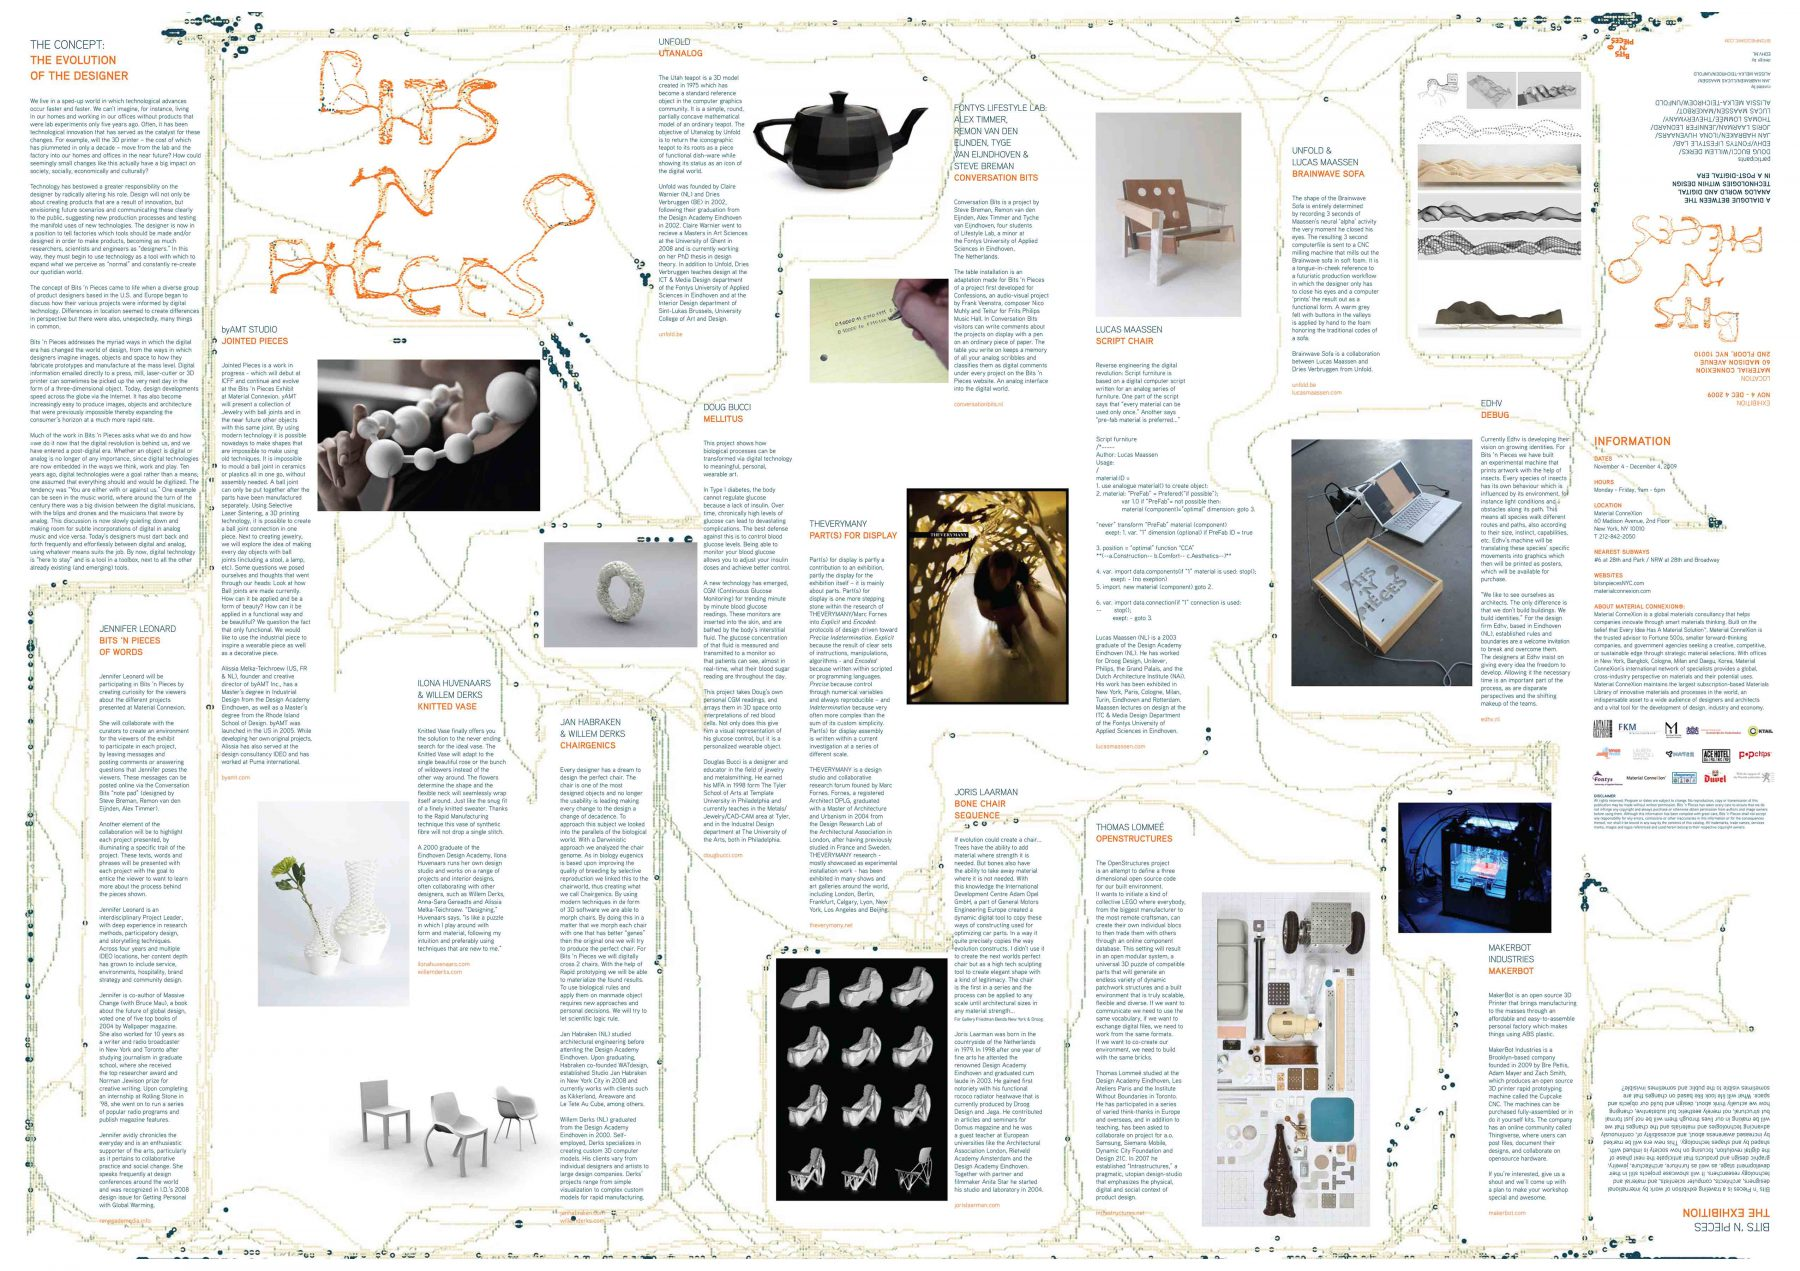 Bits-and-Pieces-Exhibit-byAMT-MaterialConnexion-Invite-Folder-1800x1271.jpg